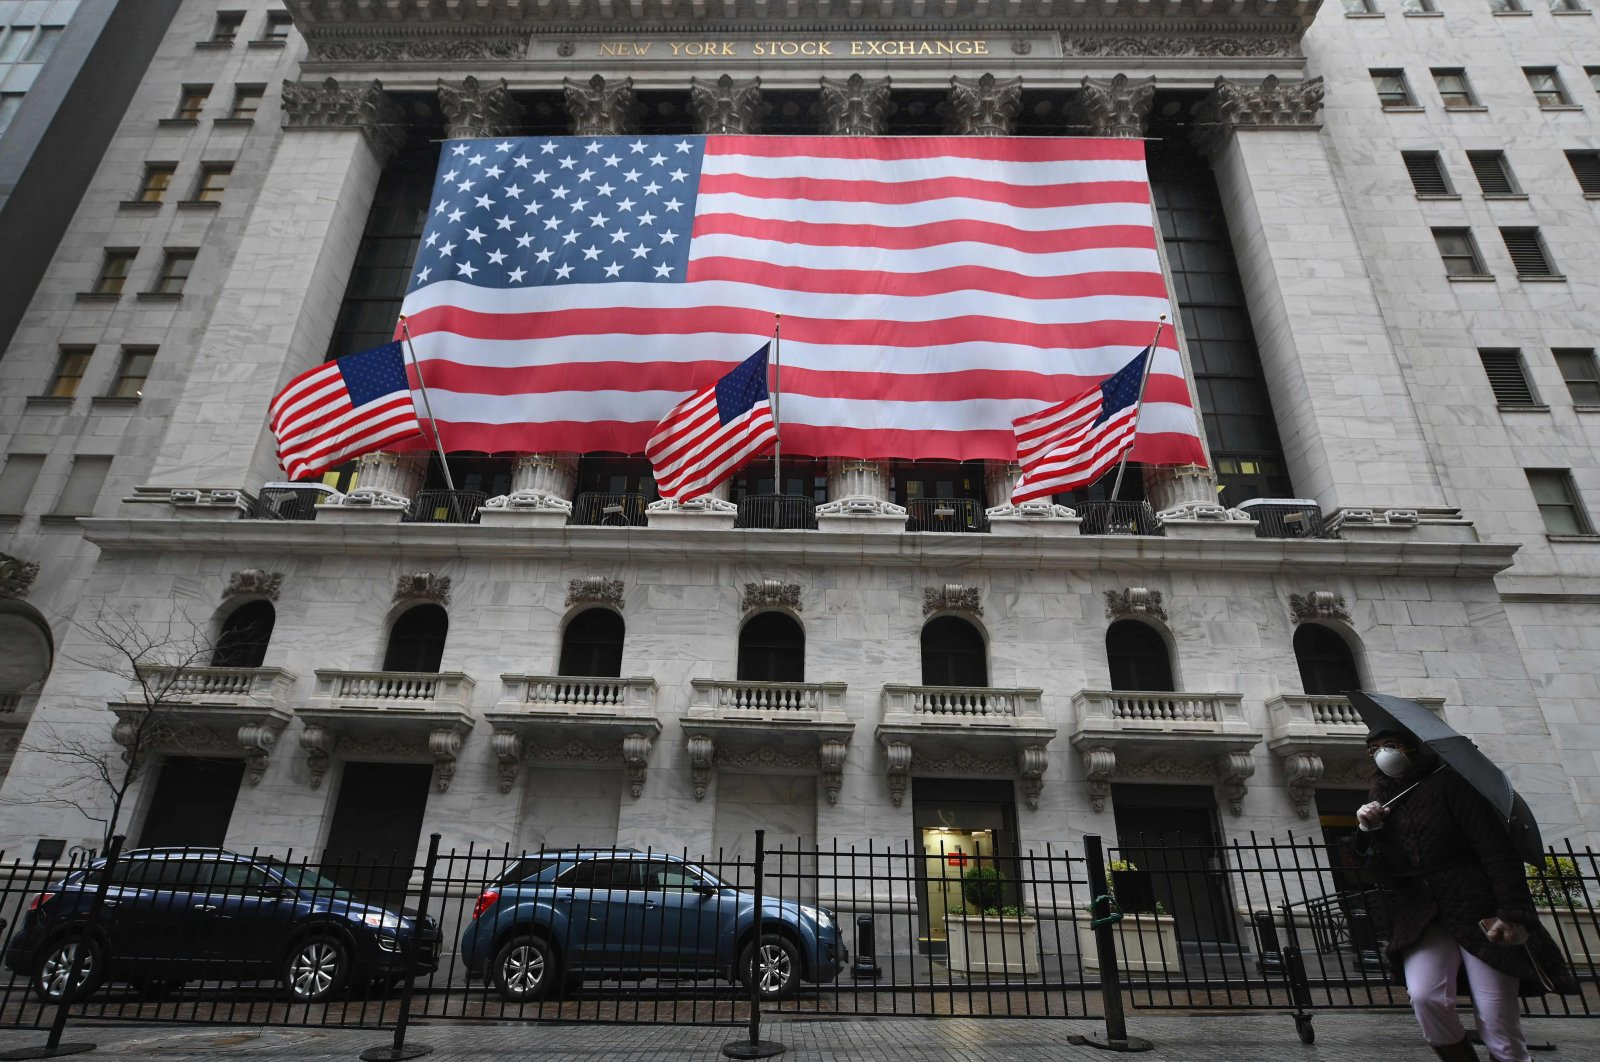 In this file photo a view of New York Stock Exchange is seen on Wall Street March 23, 2020 in New York City. (AFP Photo)